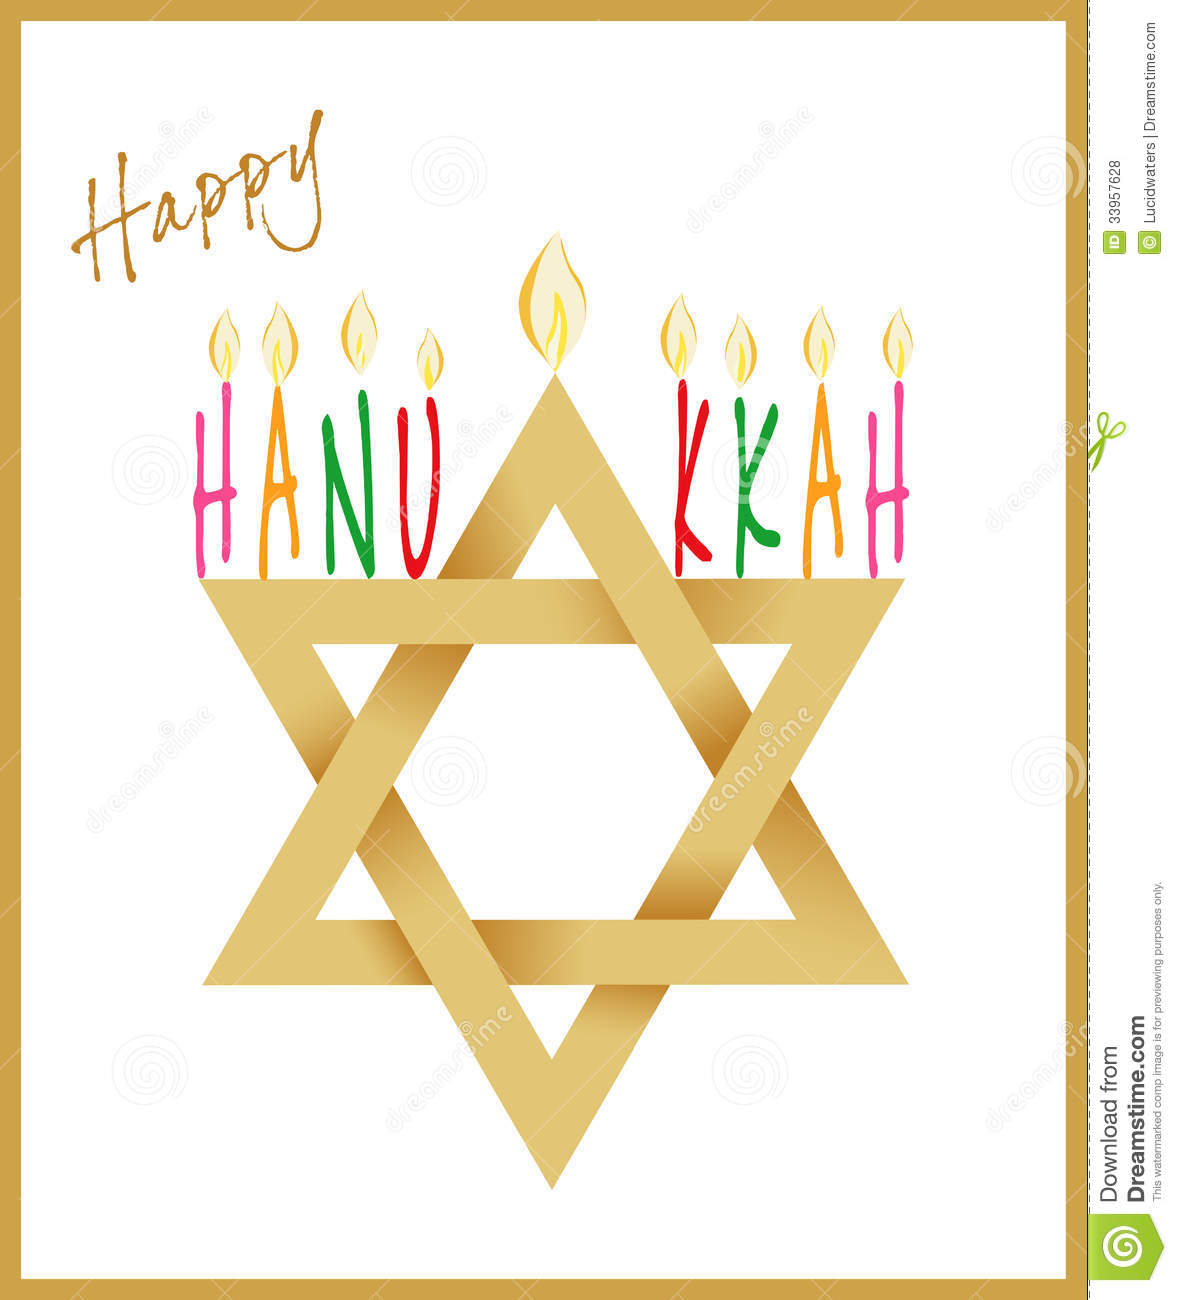 ... of David and Menorah or hanukkiya for the Jewish holiday of Hanukkah